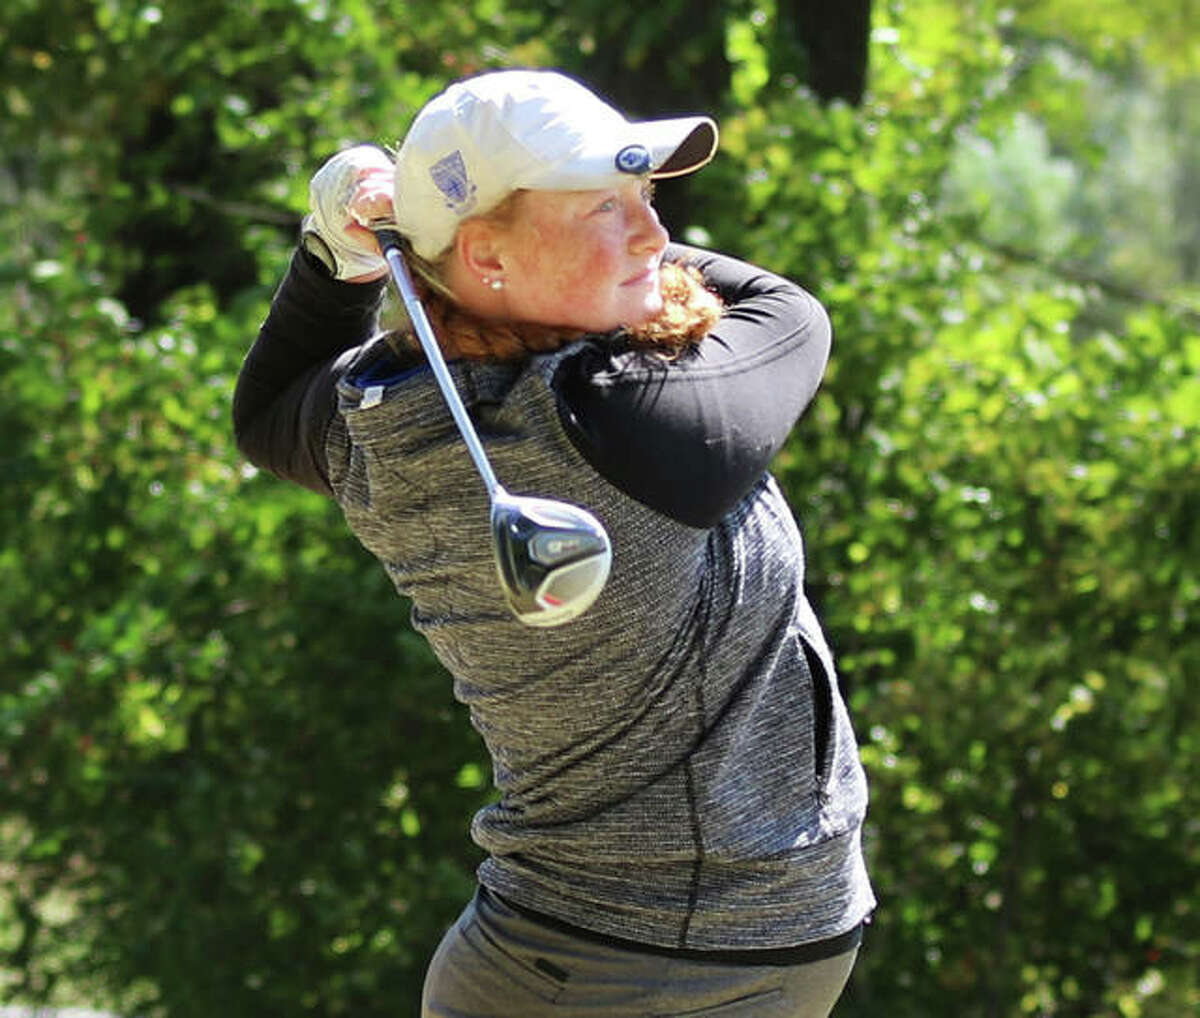 Marquette Catholic's Gracie Piar watches her drive Thursday in the Gary Bair Invite at Oak Brook in Edwardsville.